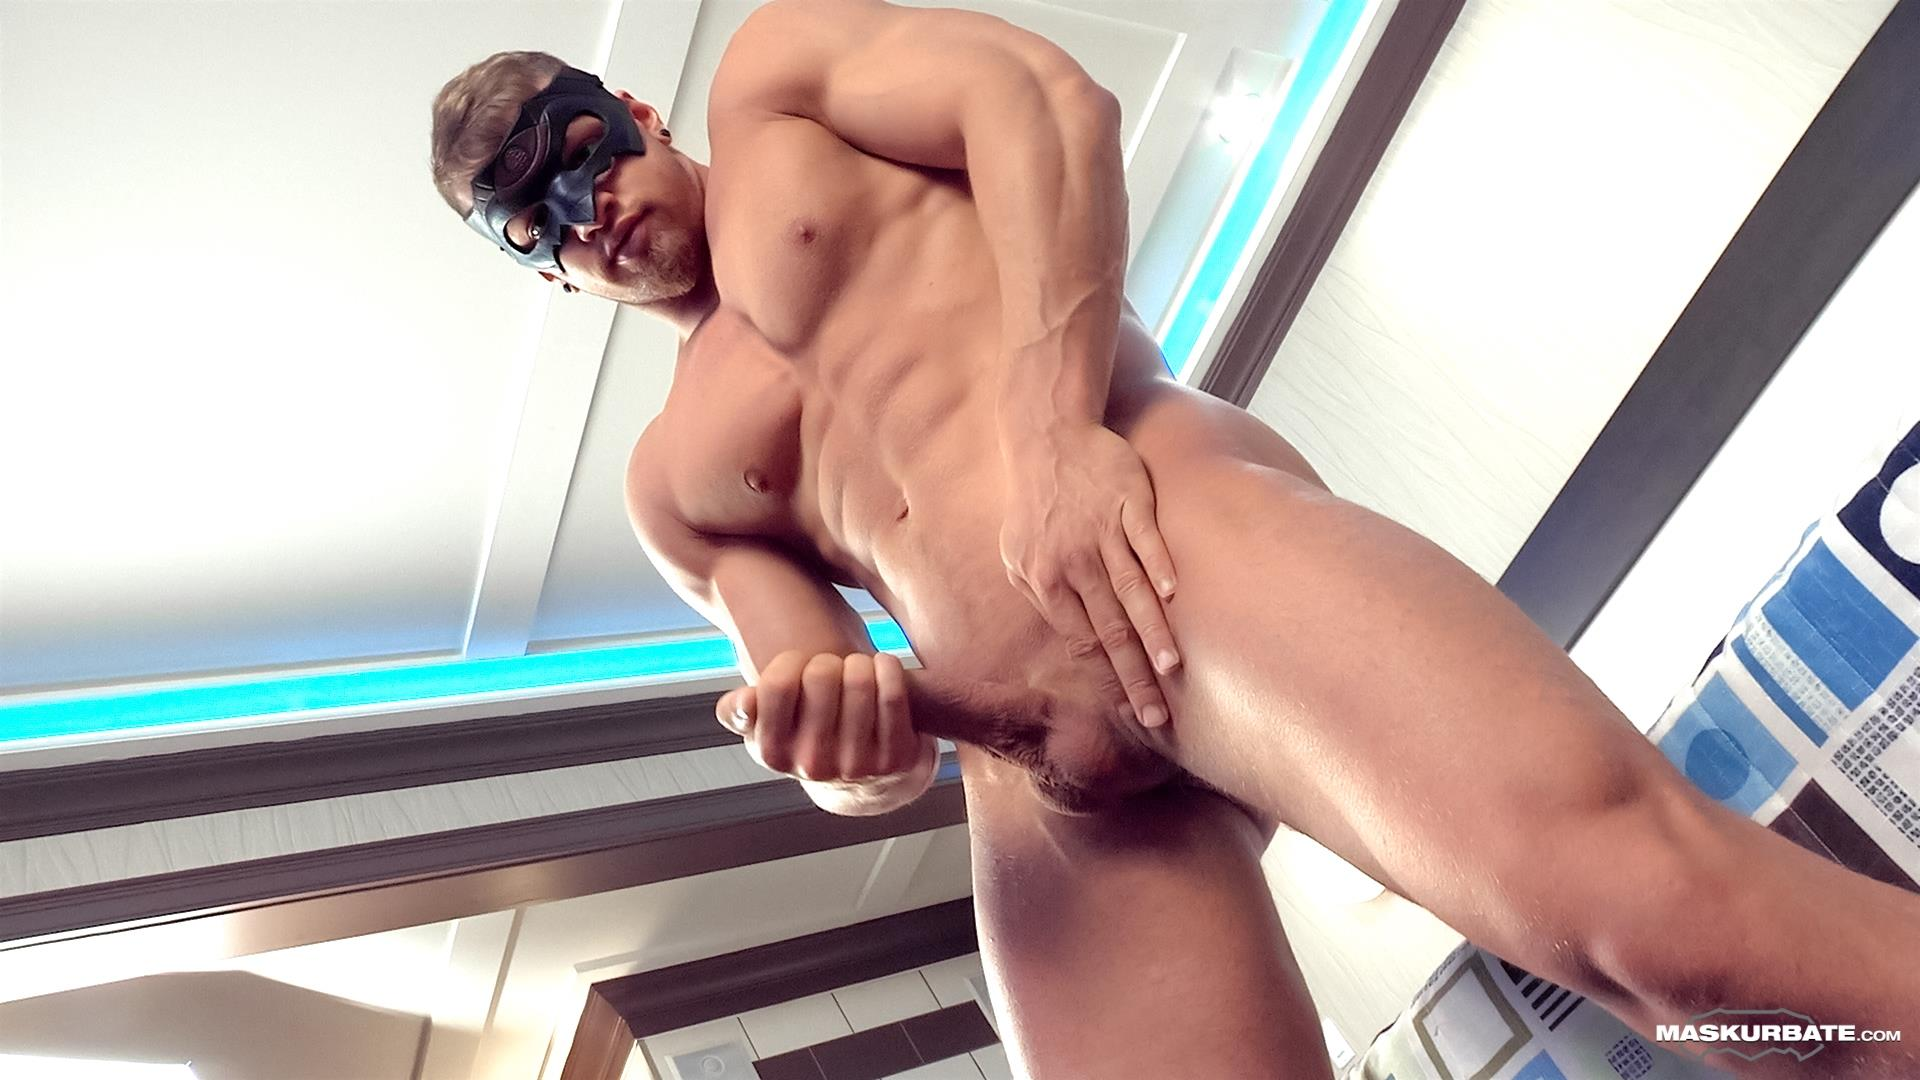 Maskurbate Pascal and Brad Straight Muscle Hunk With A Big Uncut Cock Jerking His Cock Amateur Gay Porn 11 Worshipping A Straight Muscle Hunk With A Big Uncut Cock